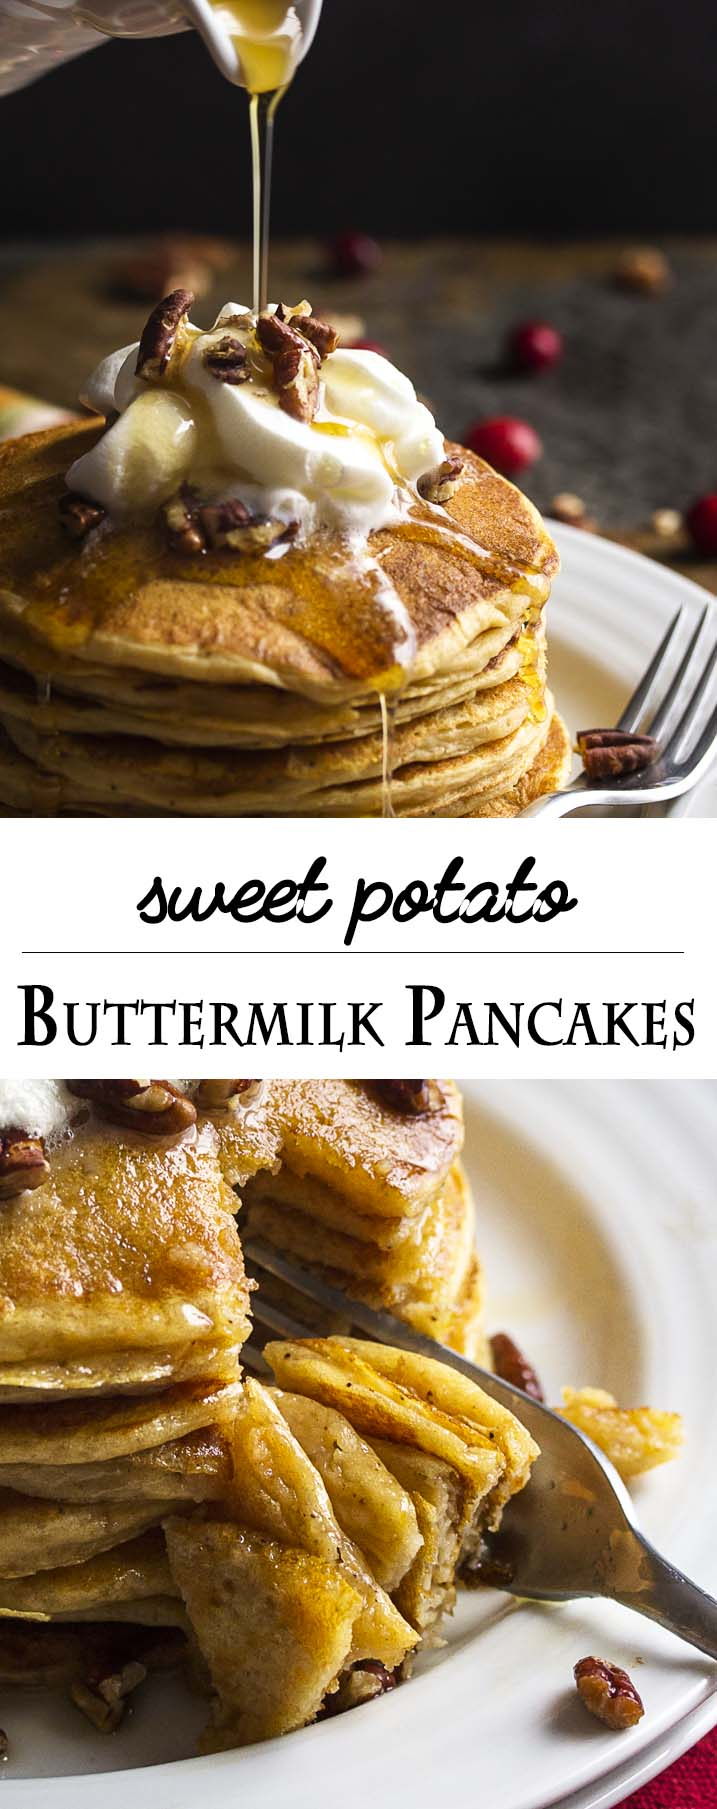 Light, fluffy and full of mashed sweet potatoes, these sweet potato buttermilk pancakes are a tasty and tangy way to start your day. | justalittlebitofbacon.com